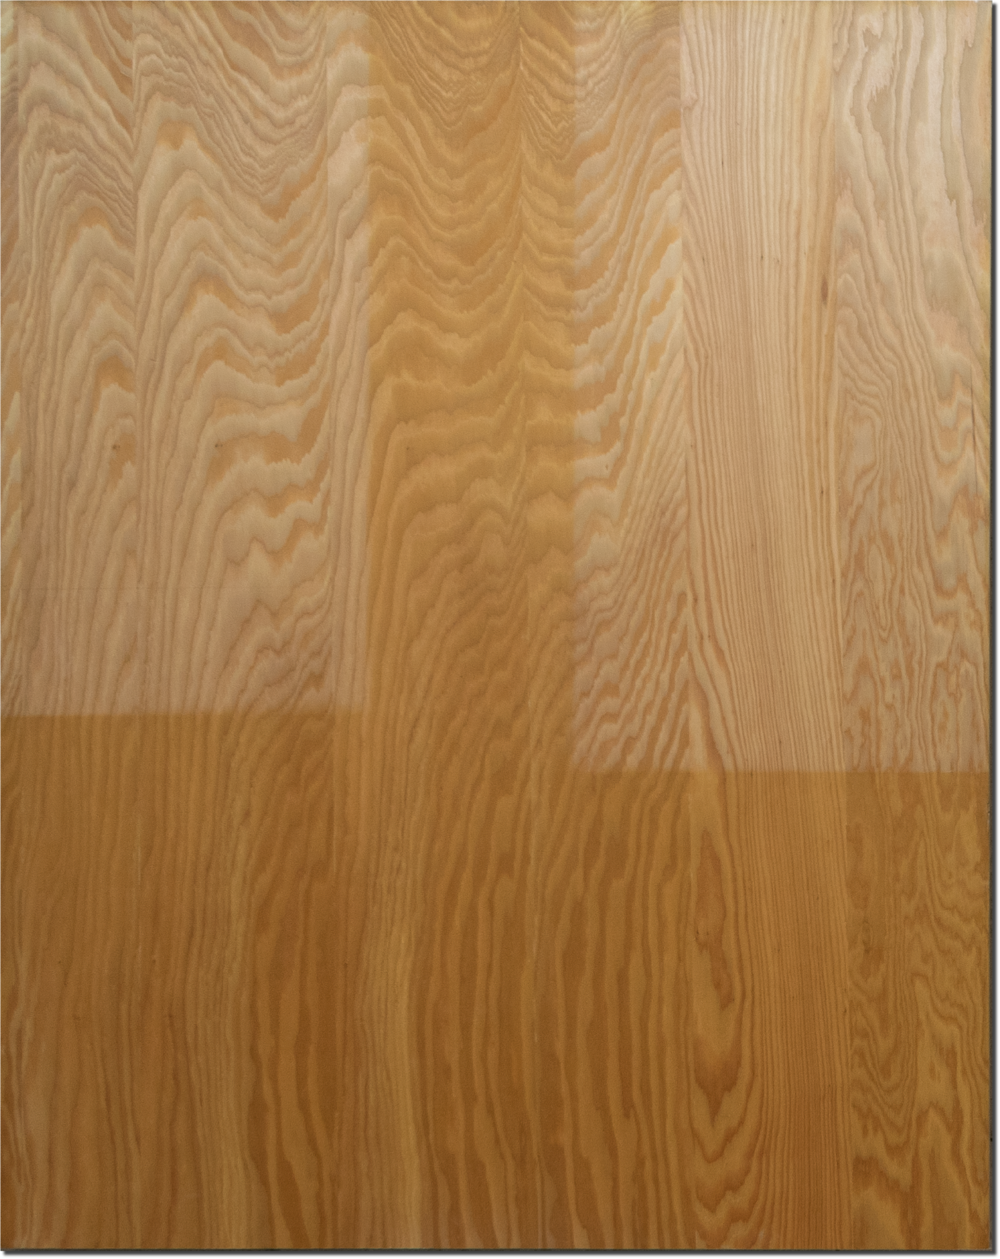 No Time for Time #1, larch wood panel, natural photographic development, 110cm x 140cm